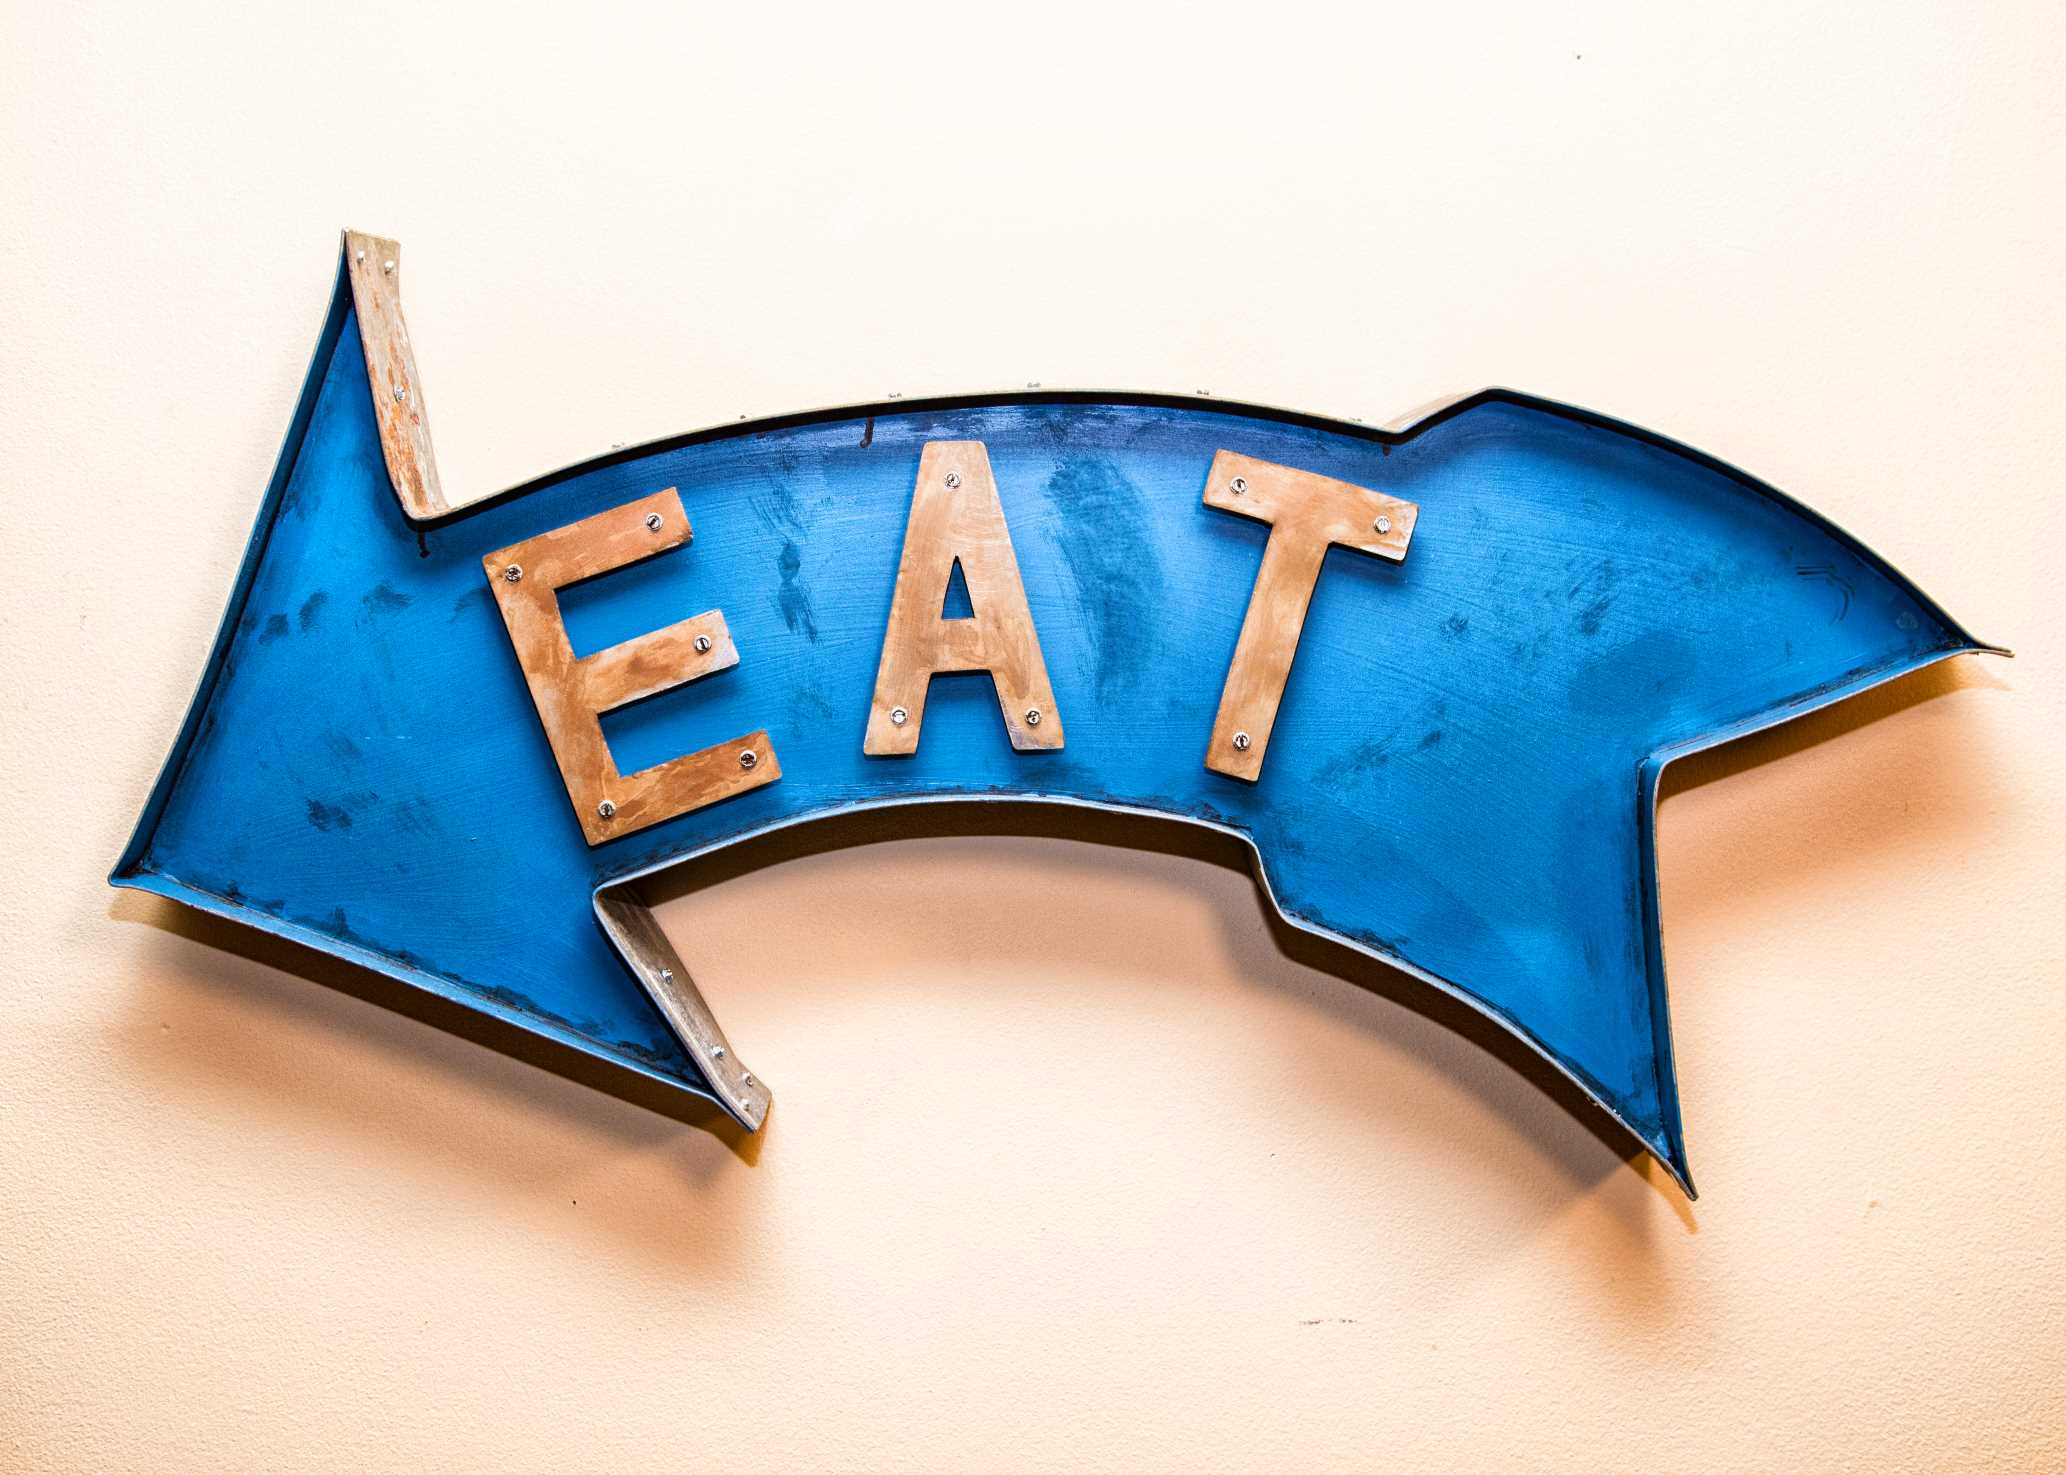 Eat Arrow – $325.00